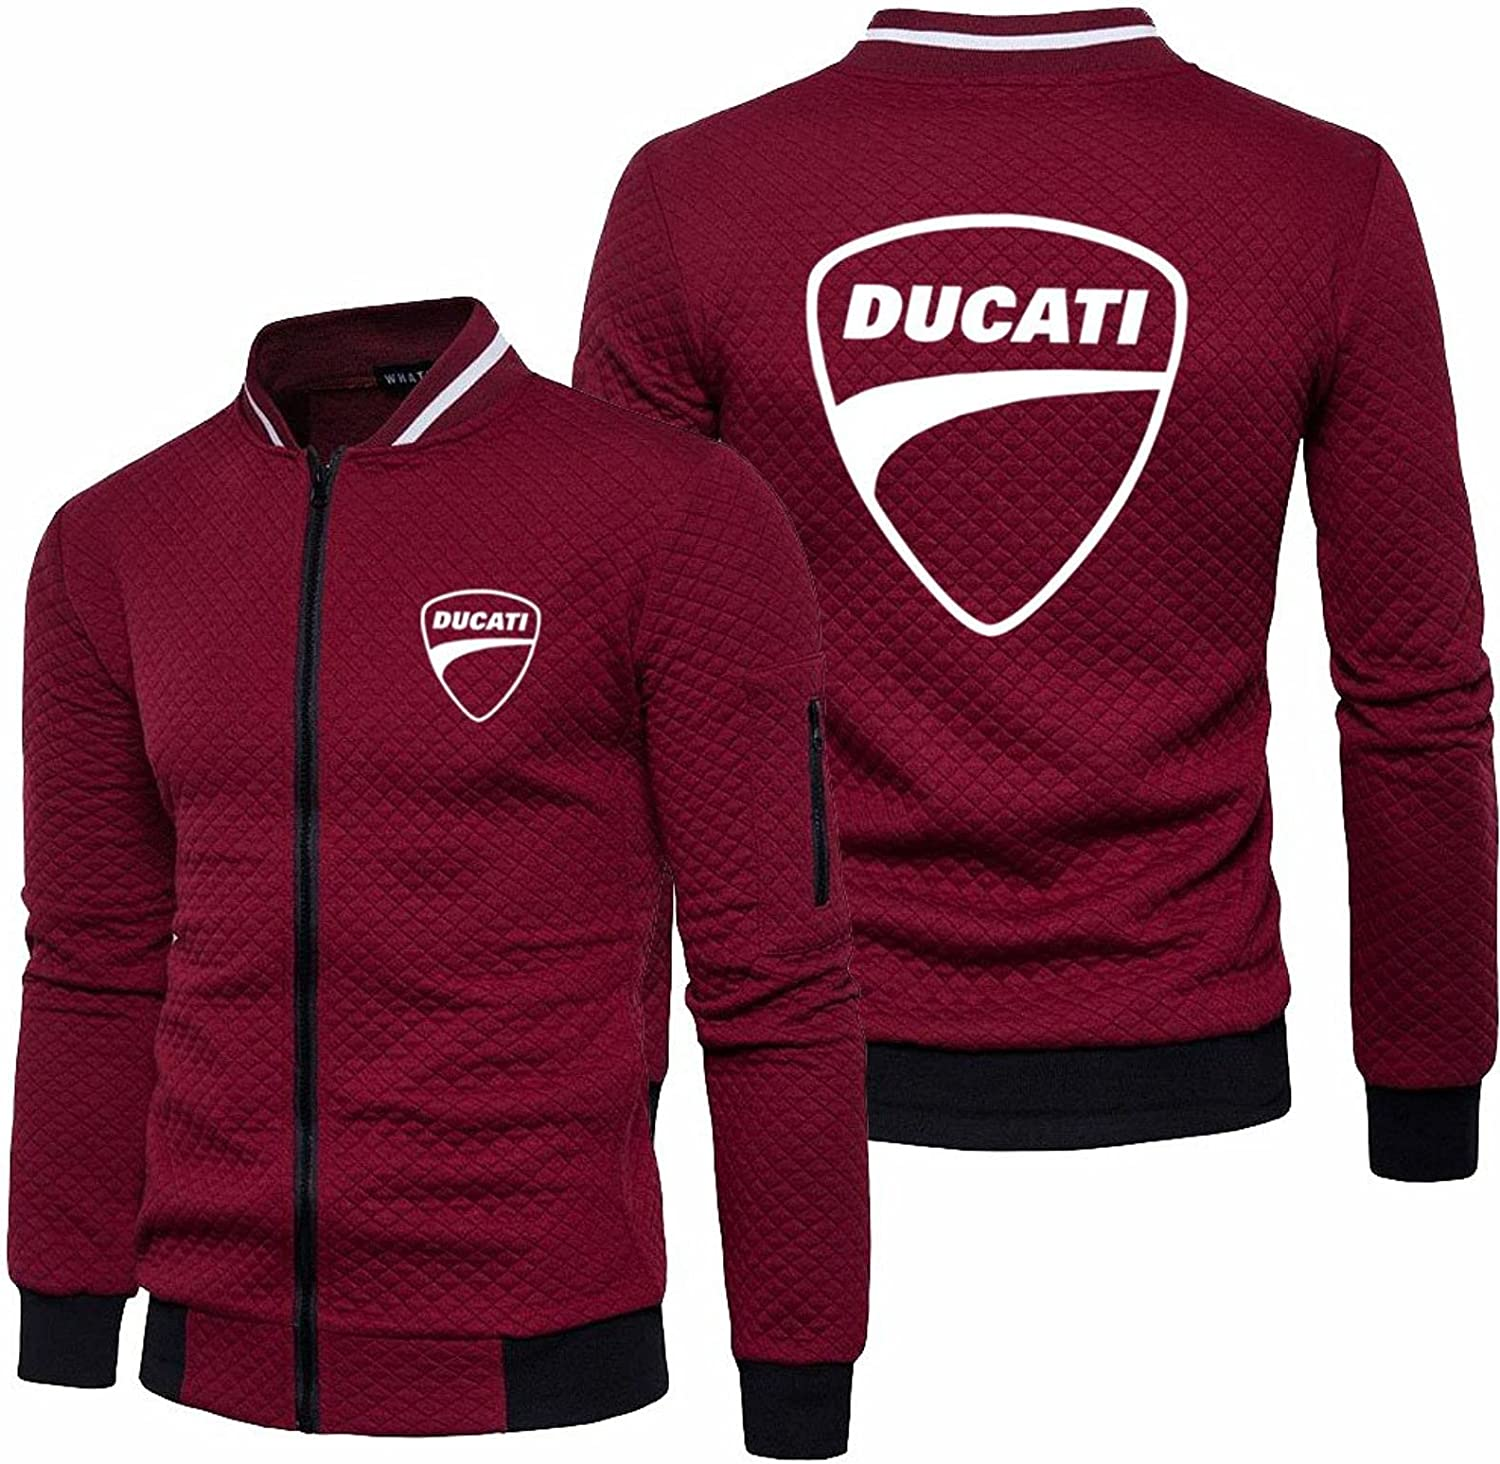 Courier shipping free BOUTIQUE GIFT Men's Baseball Jacket for Printing Ducati Uniform Sale SALE% OFF